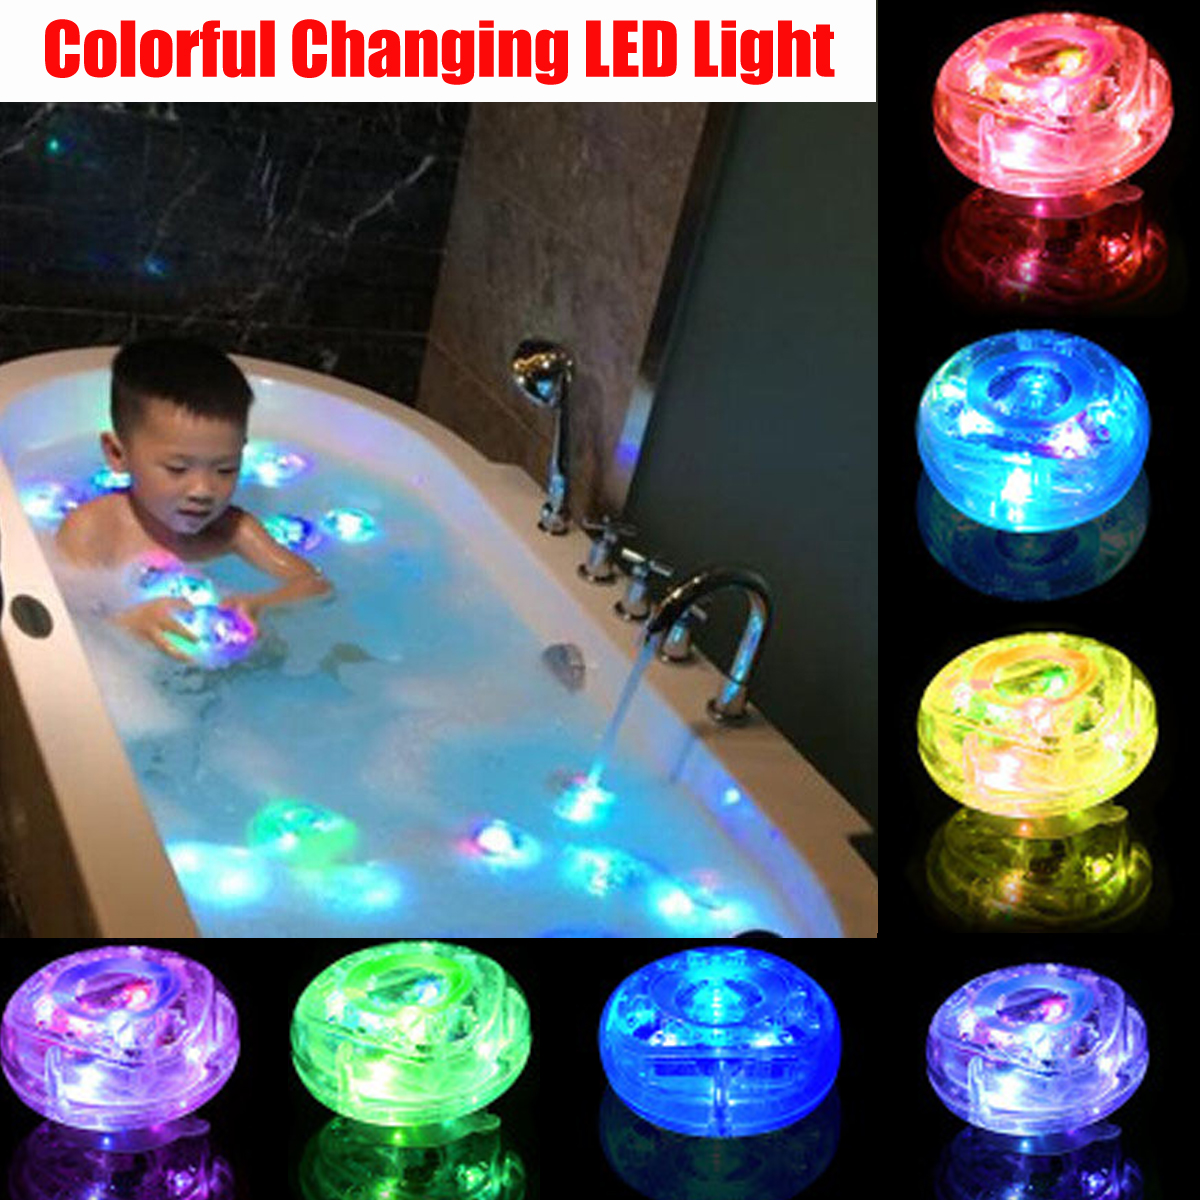 Grtsunsea 1/2pcs Bath Light Up Toys LED Lamp Waterproof Kids Baby Bathroom Accessories Shower Time Tub Swimming Pool Colorful Changing